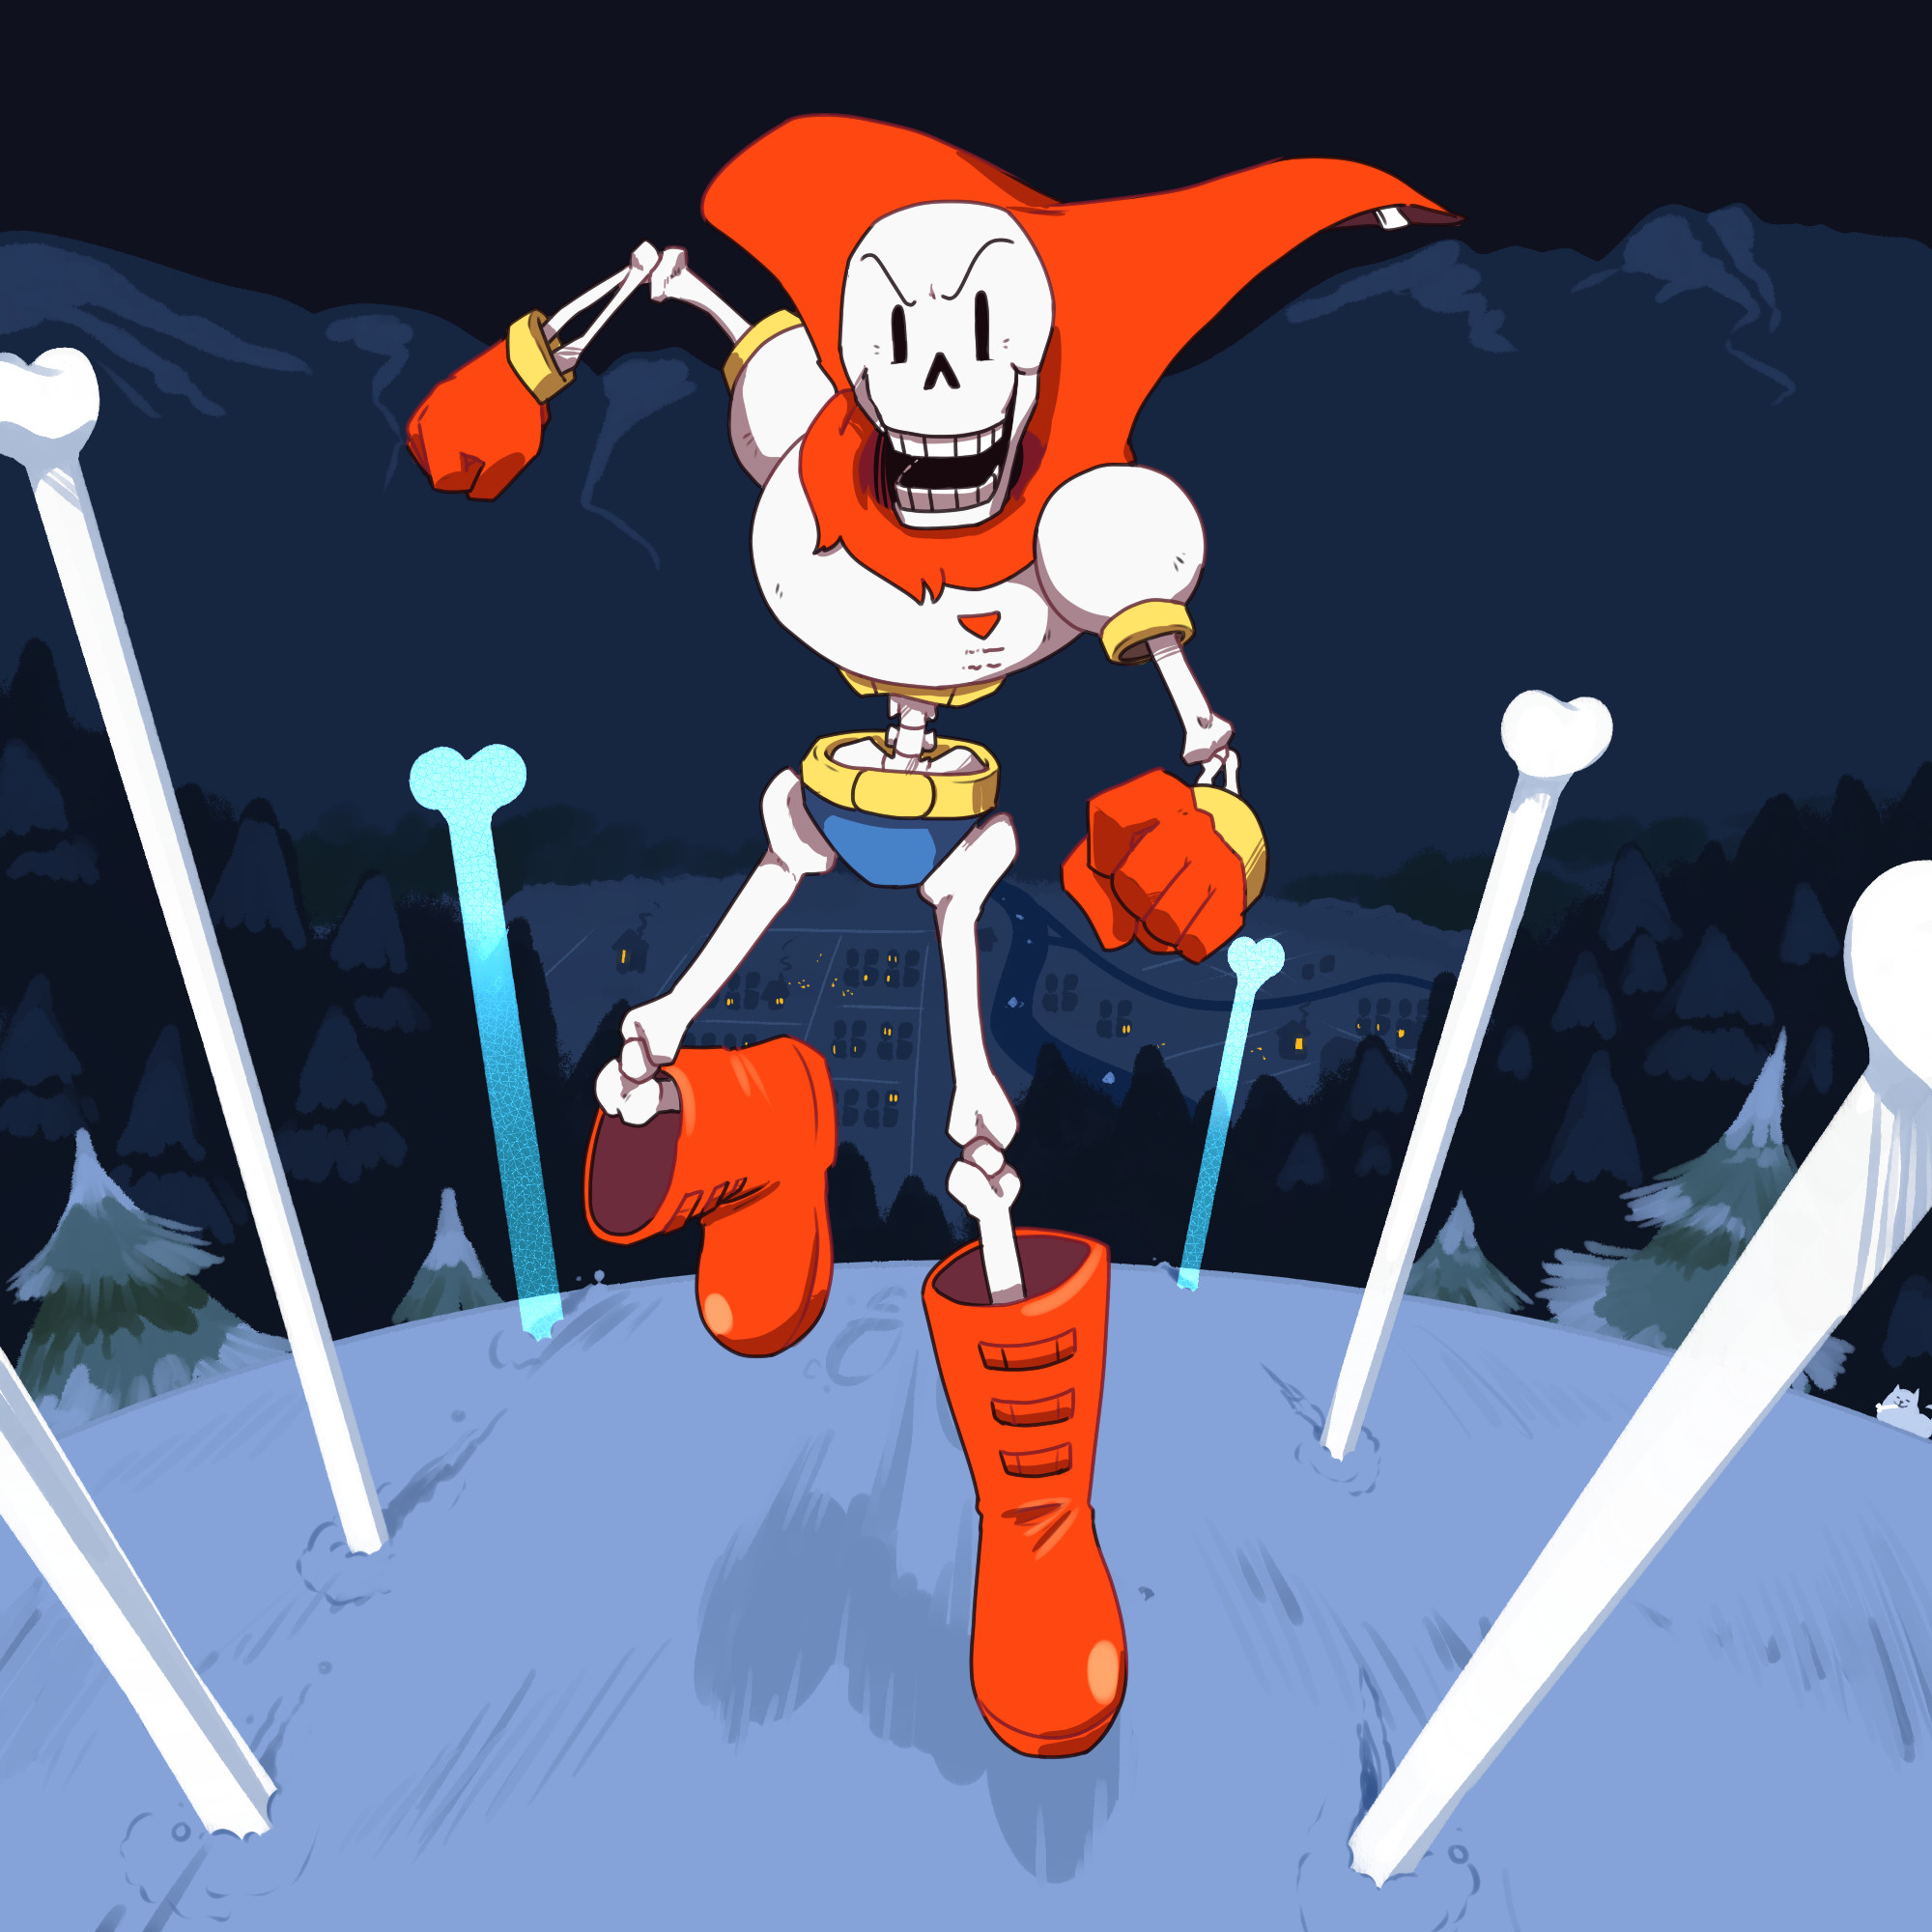 2000x2000 UNDERTALE-The Game images Papyrus HD wallpaper and background photos